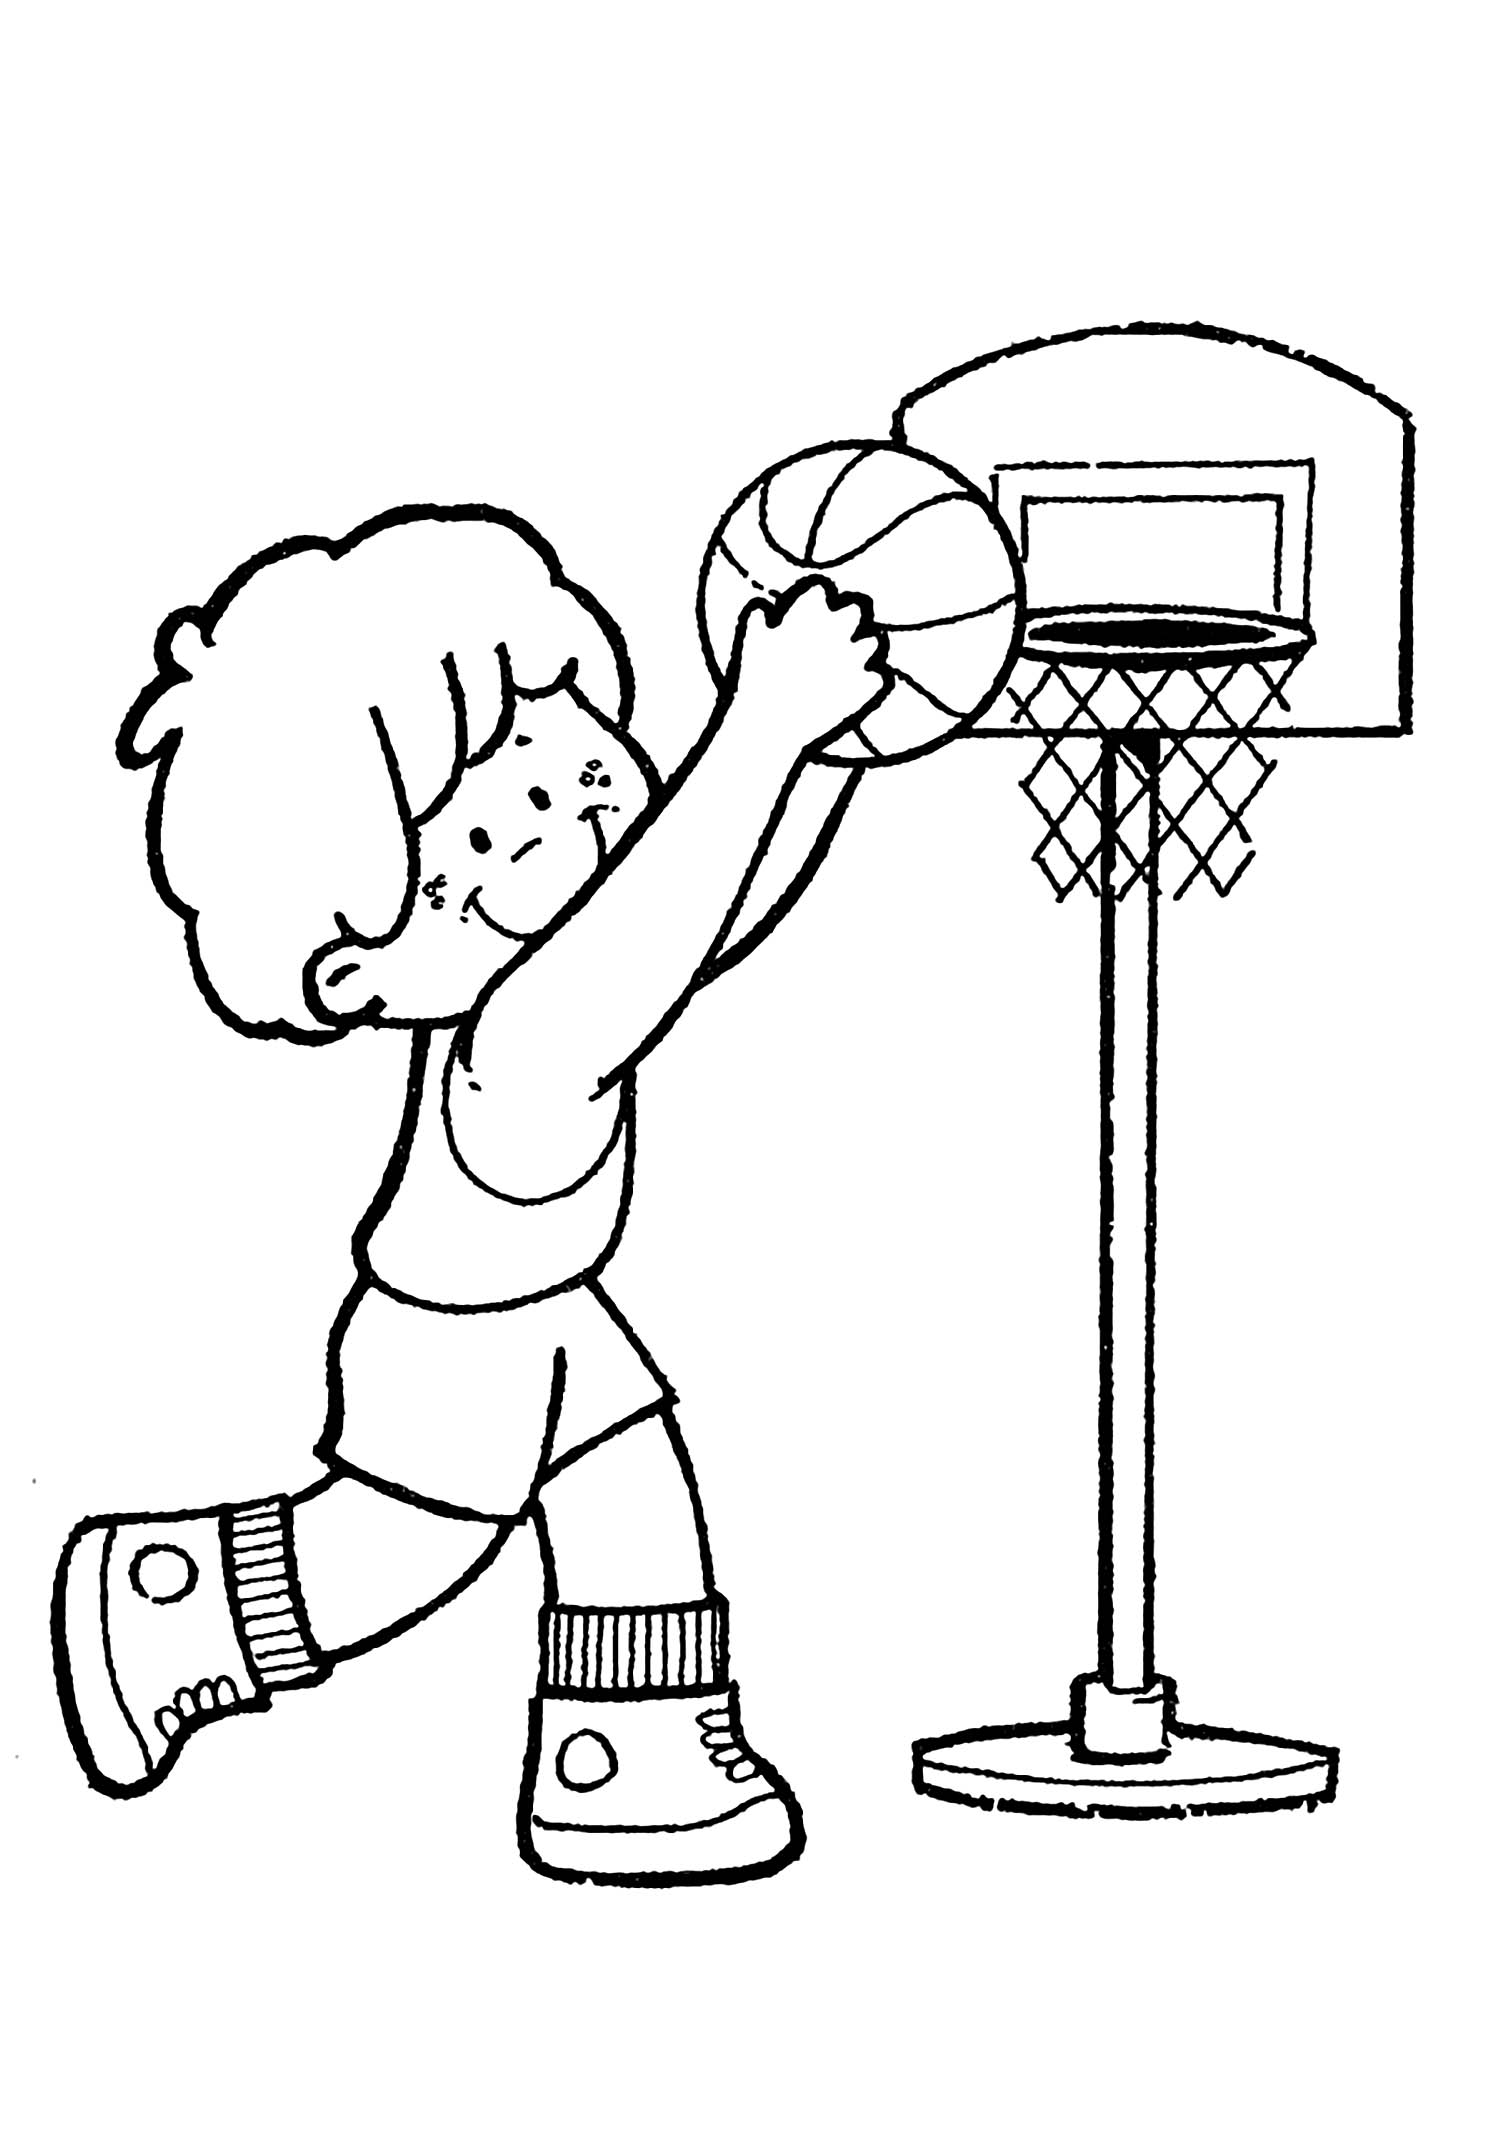 basketball pictures to color basketball for kids basketball kids coloring pages pictures basketball color to